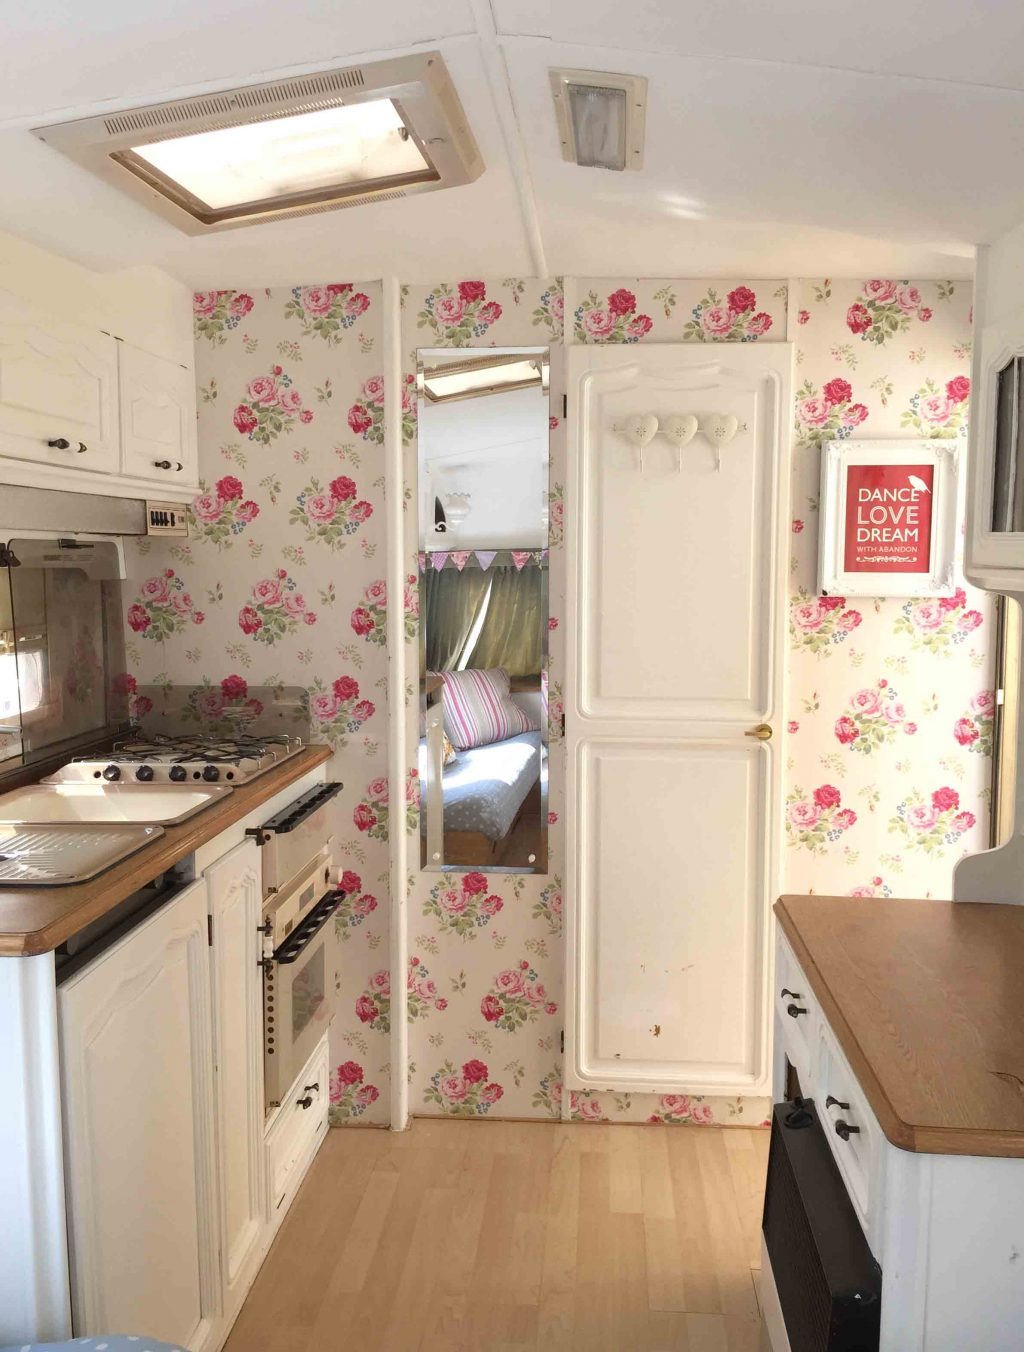 The living space in Dolly after her caravan makeover! I painted the ceiling and cupboards, and wallpapered the walls with Cath Kidston wallpaper. More info on both of my caravan makeovers on the blog!